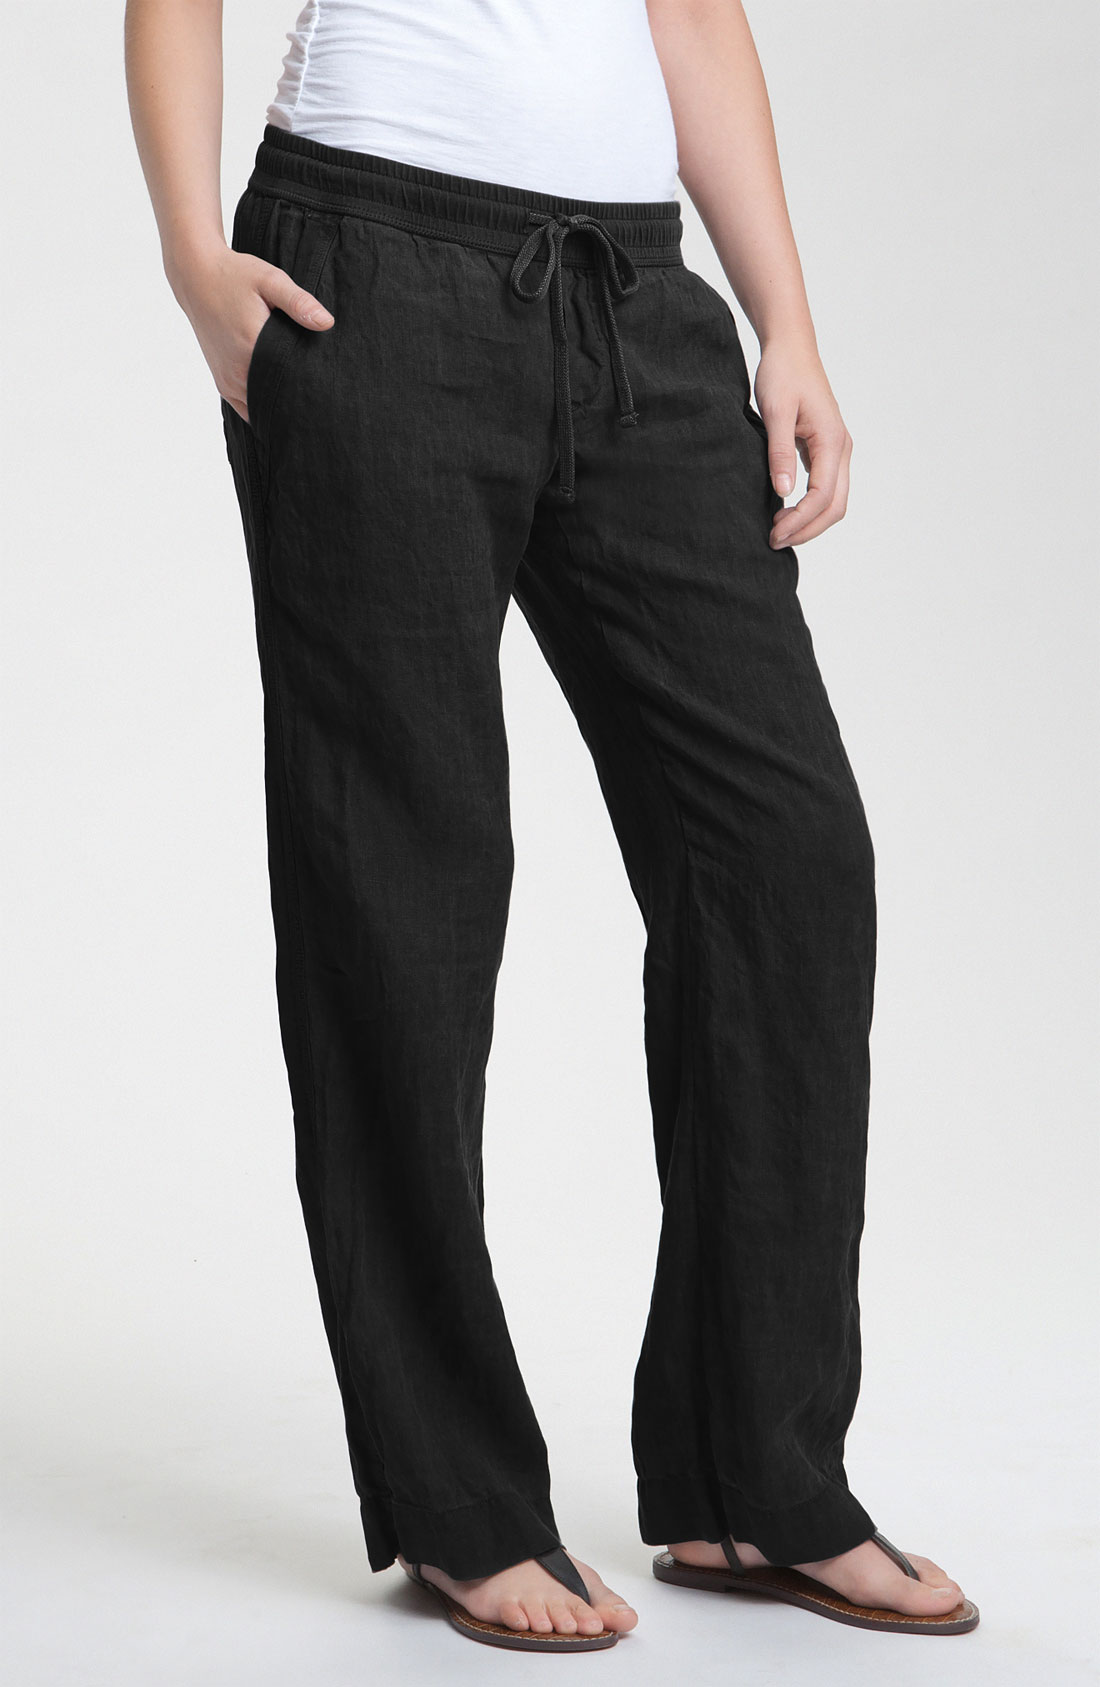 Black linen wide leg pants with pockets. They designed with wide leg cut, elastic band on the back for easy slip-on style and with two pockets in front for convenience in wearing, high waist fit make your legs looks longer. Waist line is pleated in front. They will look gorgeous on summer due to.